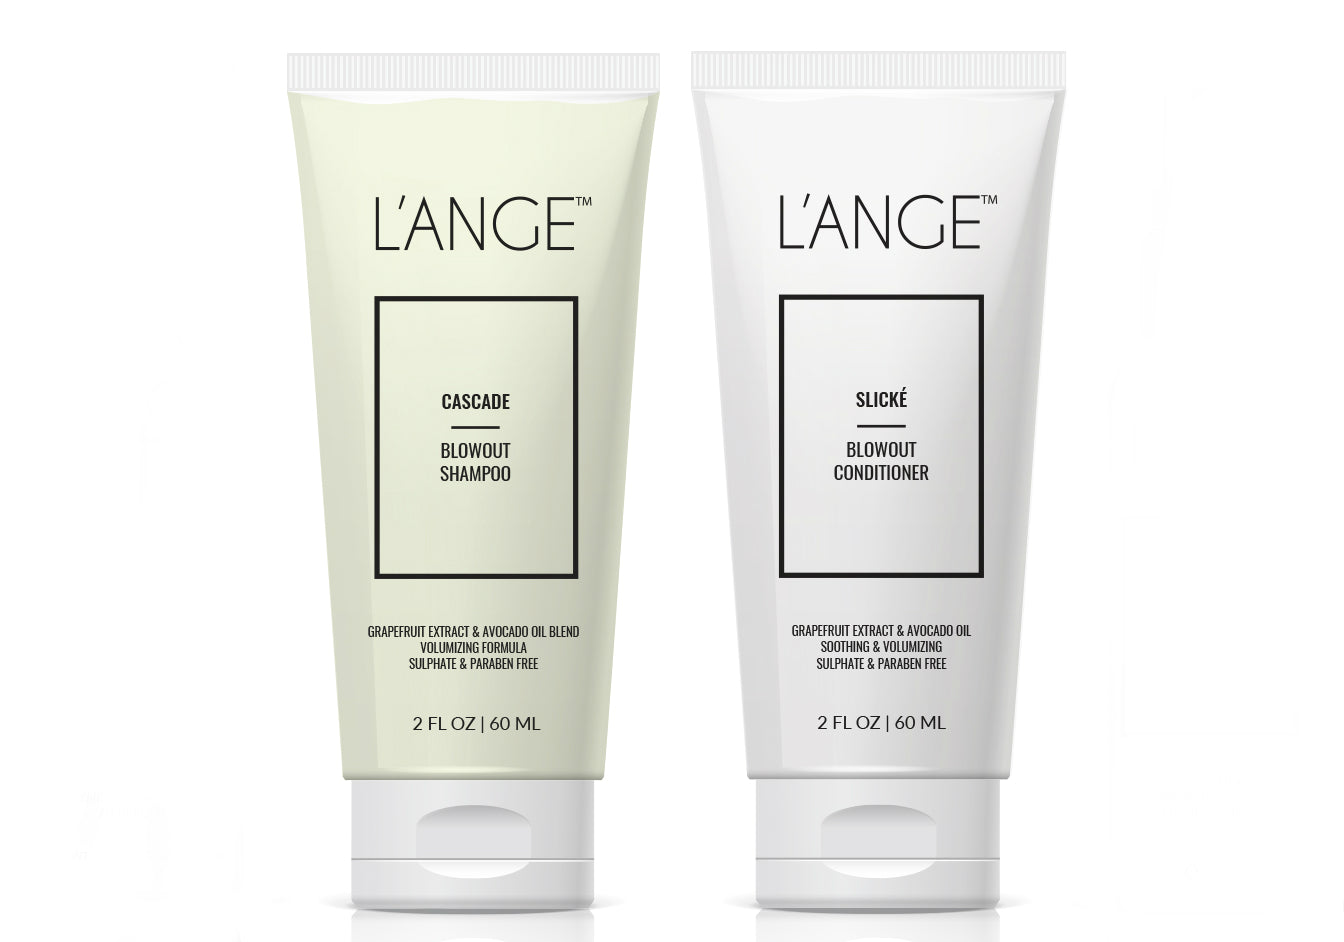 L'ange Blowout Shampoo & Conditioner